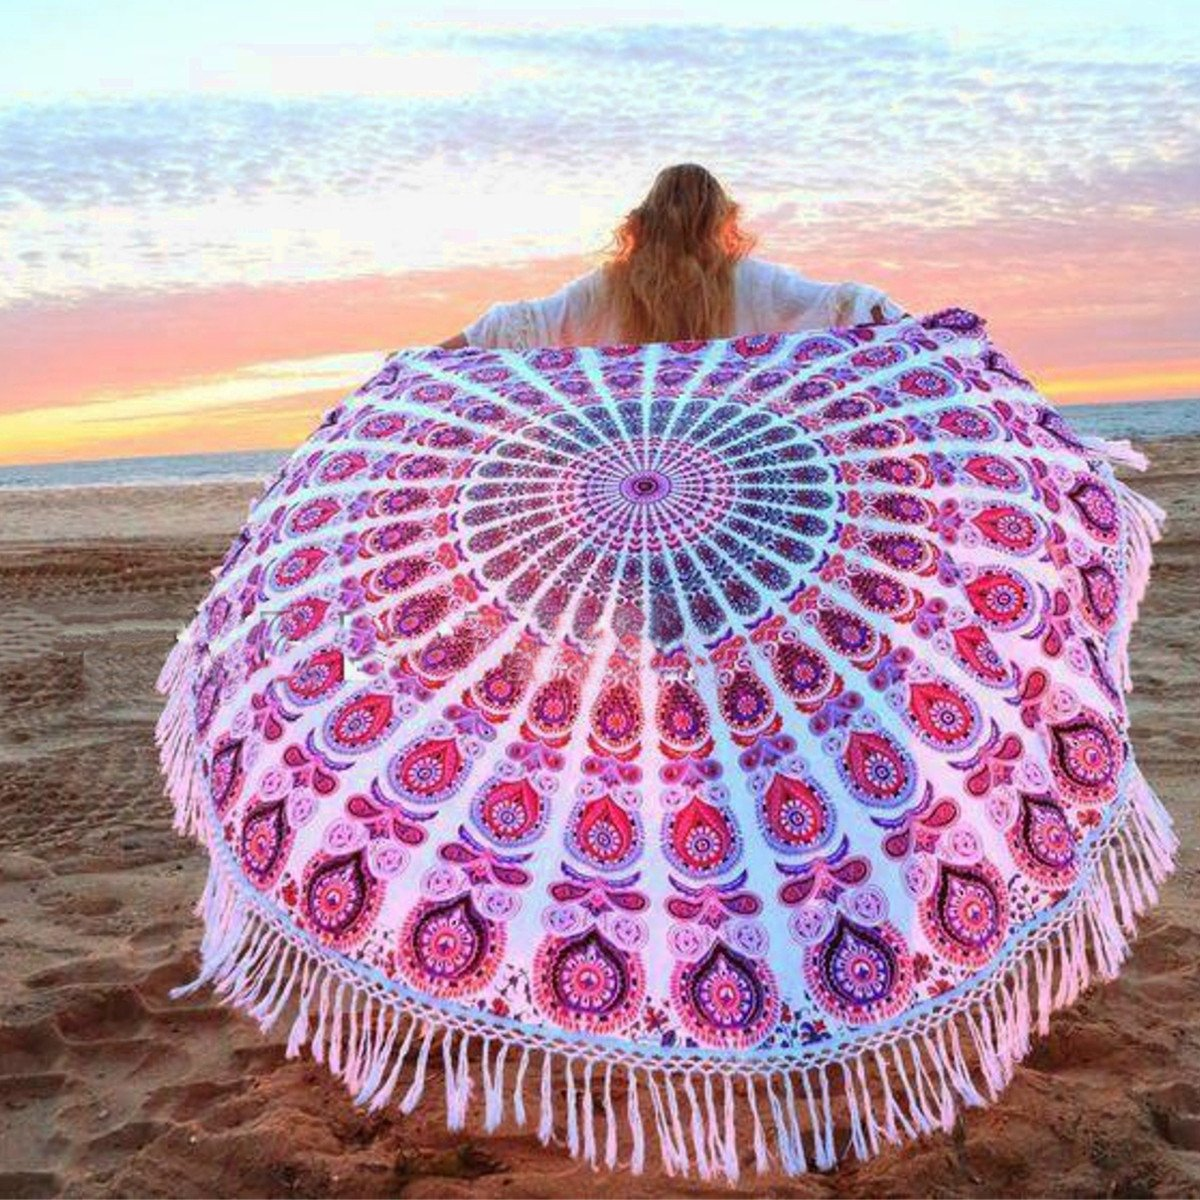 Gorgeous round beach towel